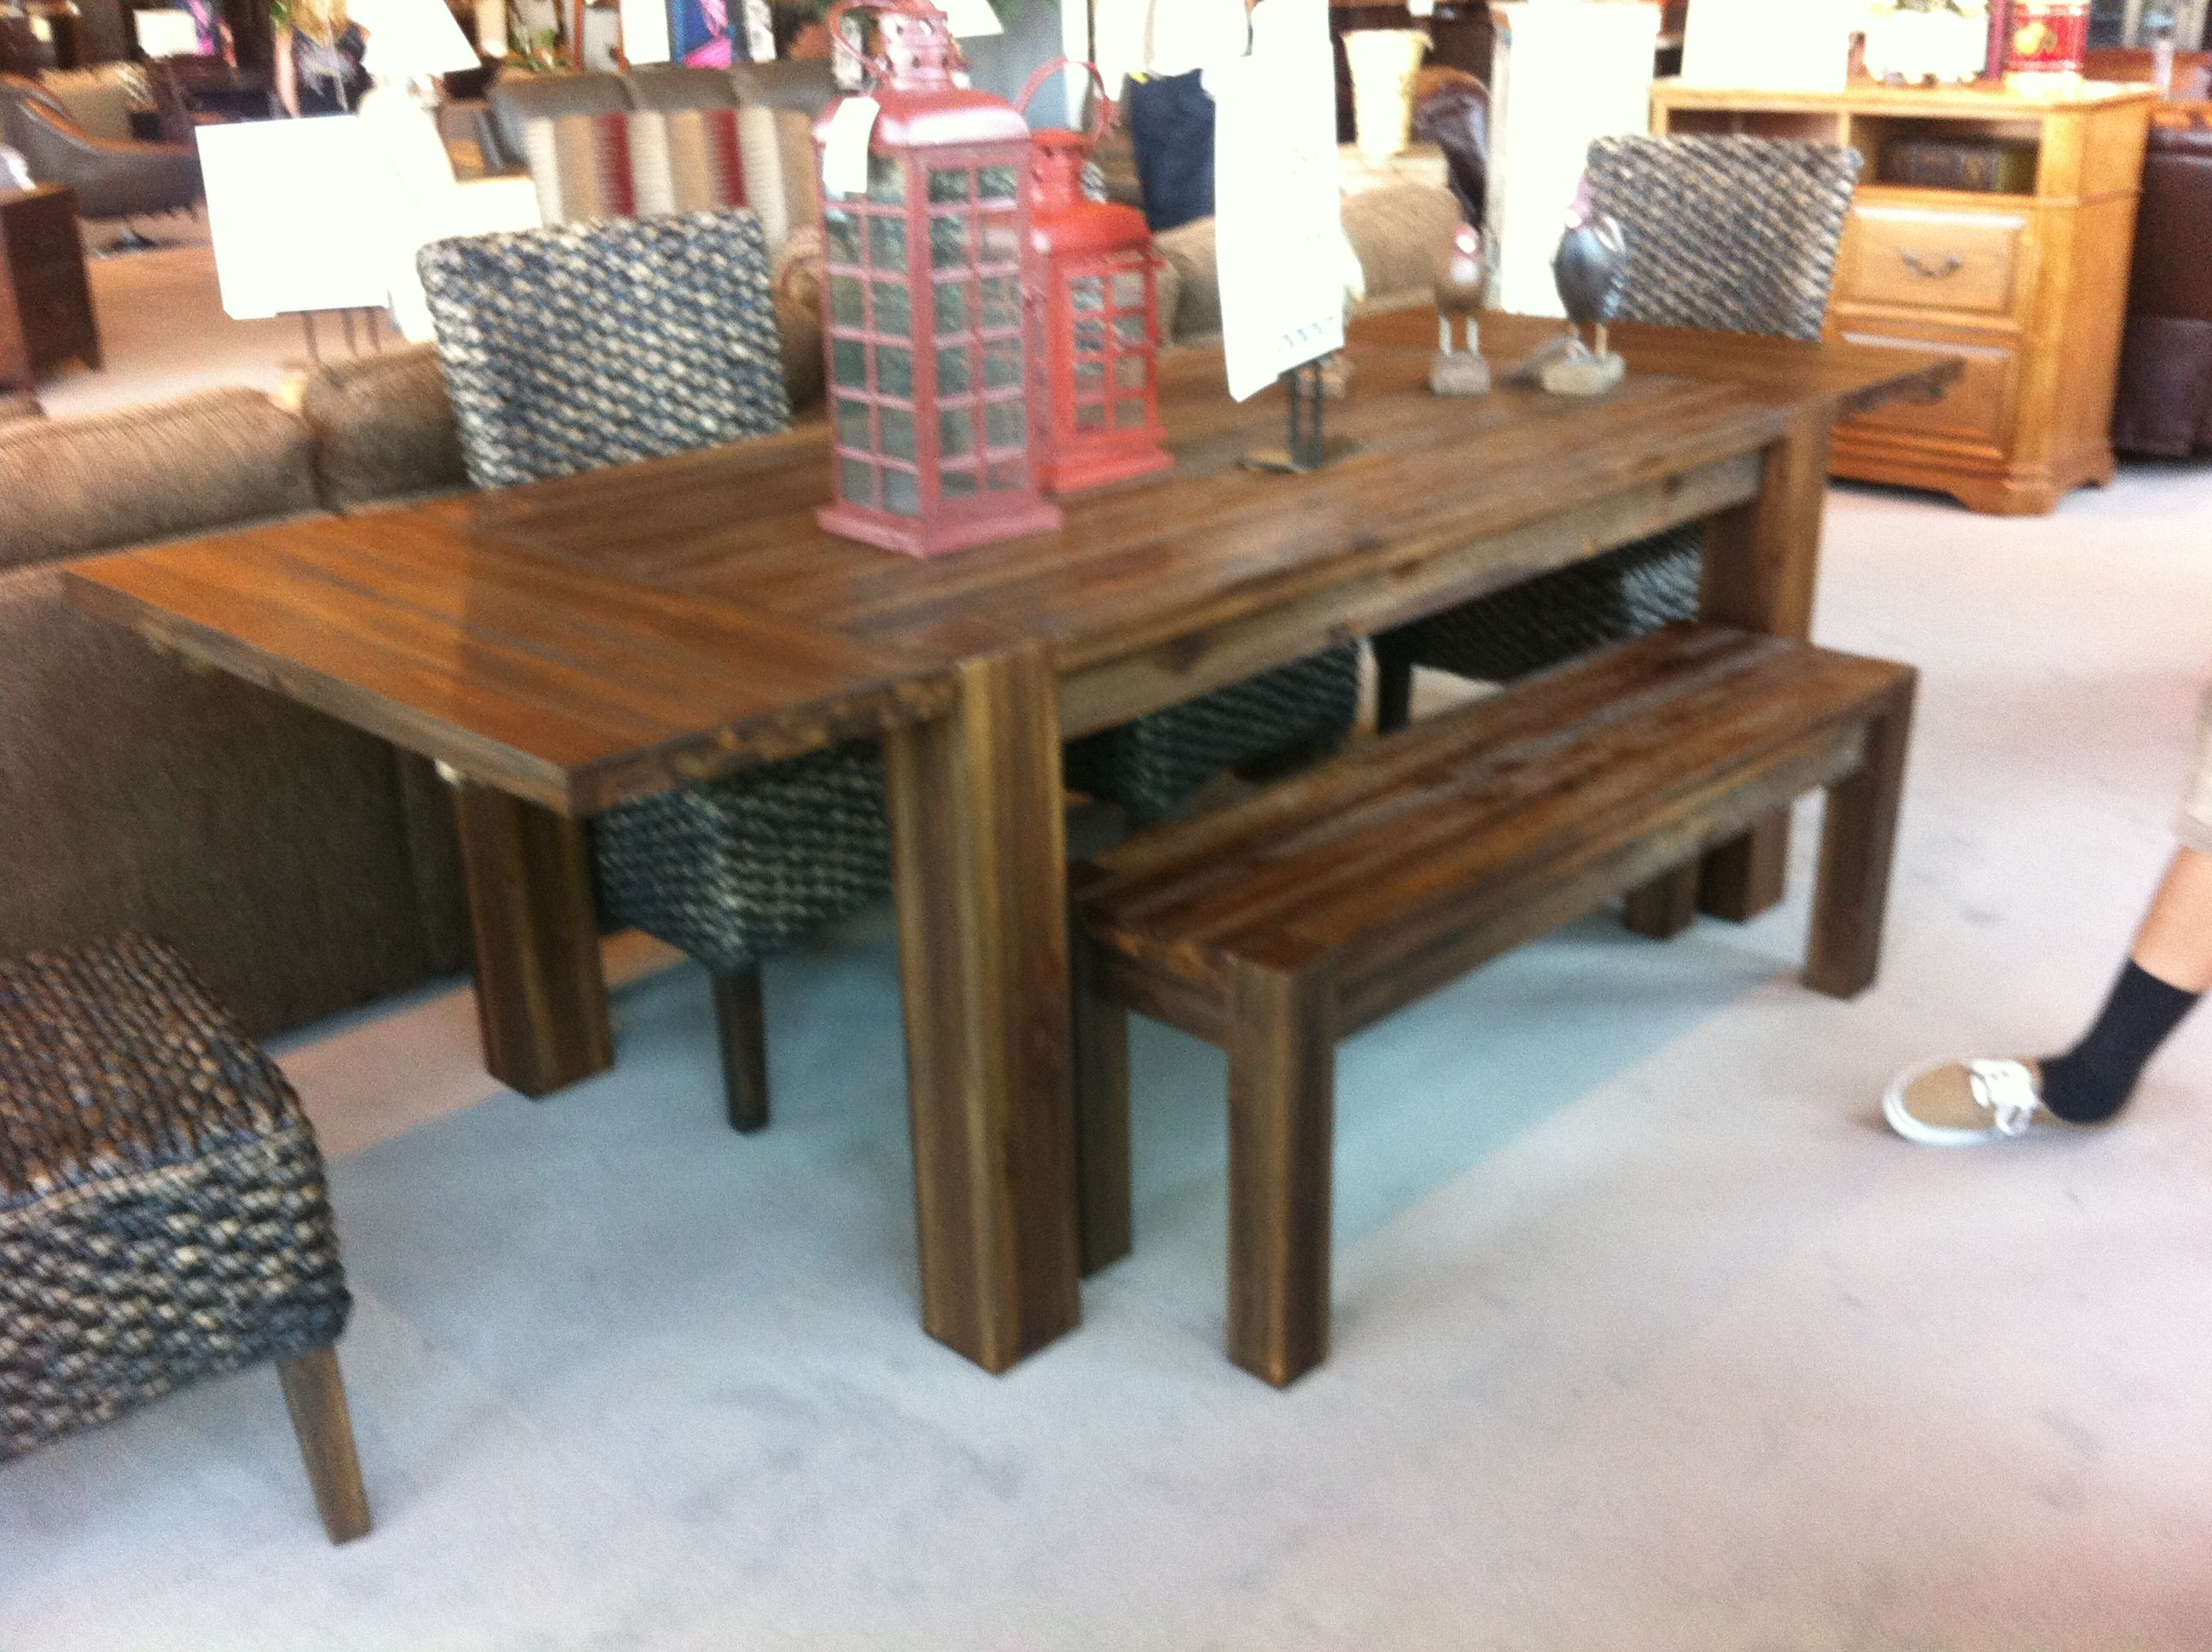 Rustic Wooden Table At Mor Furniture 499 Really Grainy And Veiny Totally My Kind Of